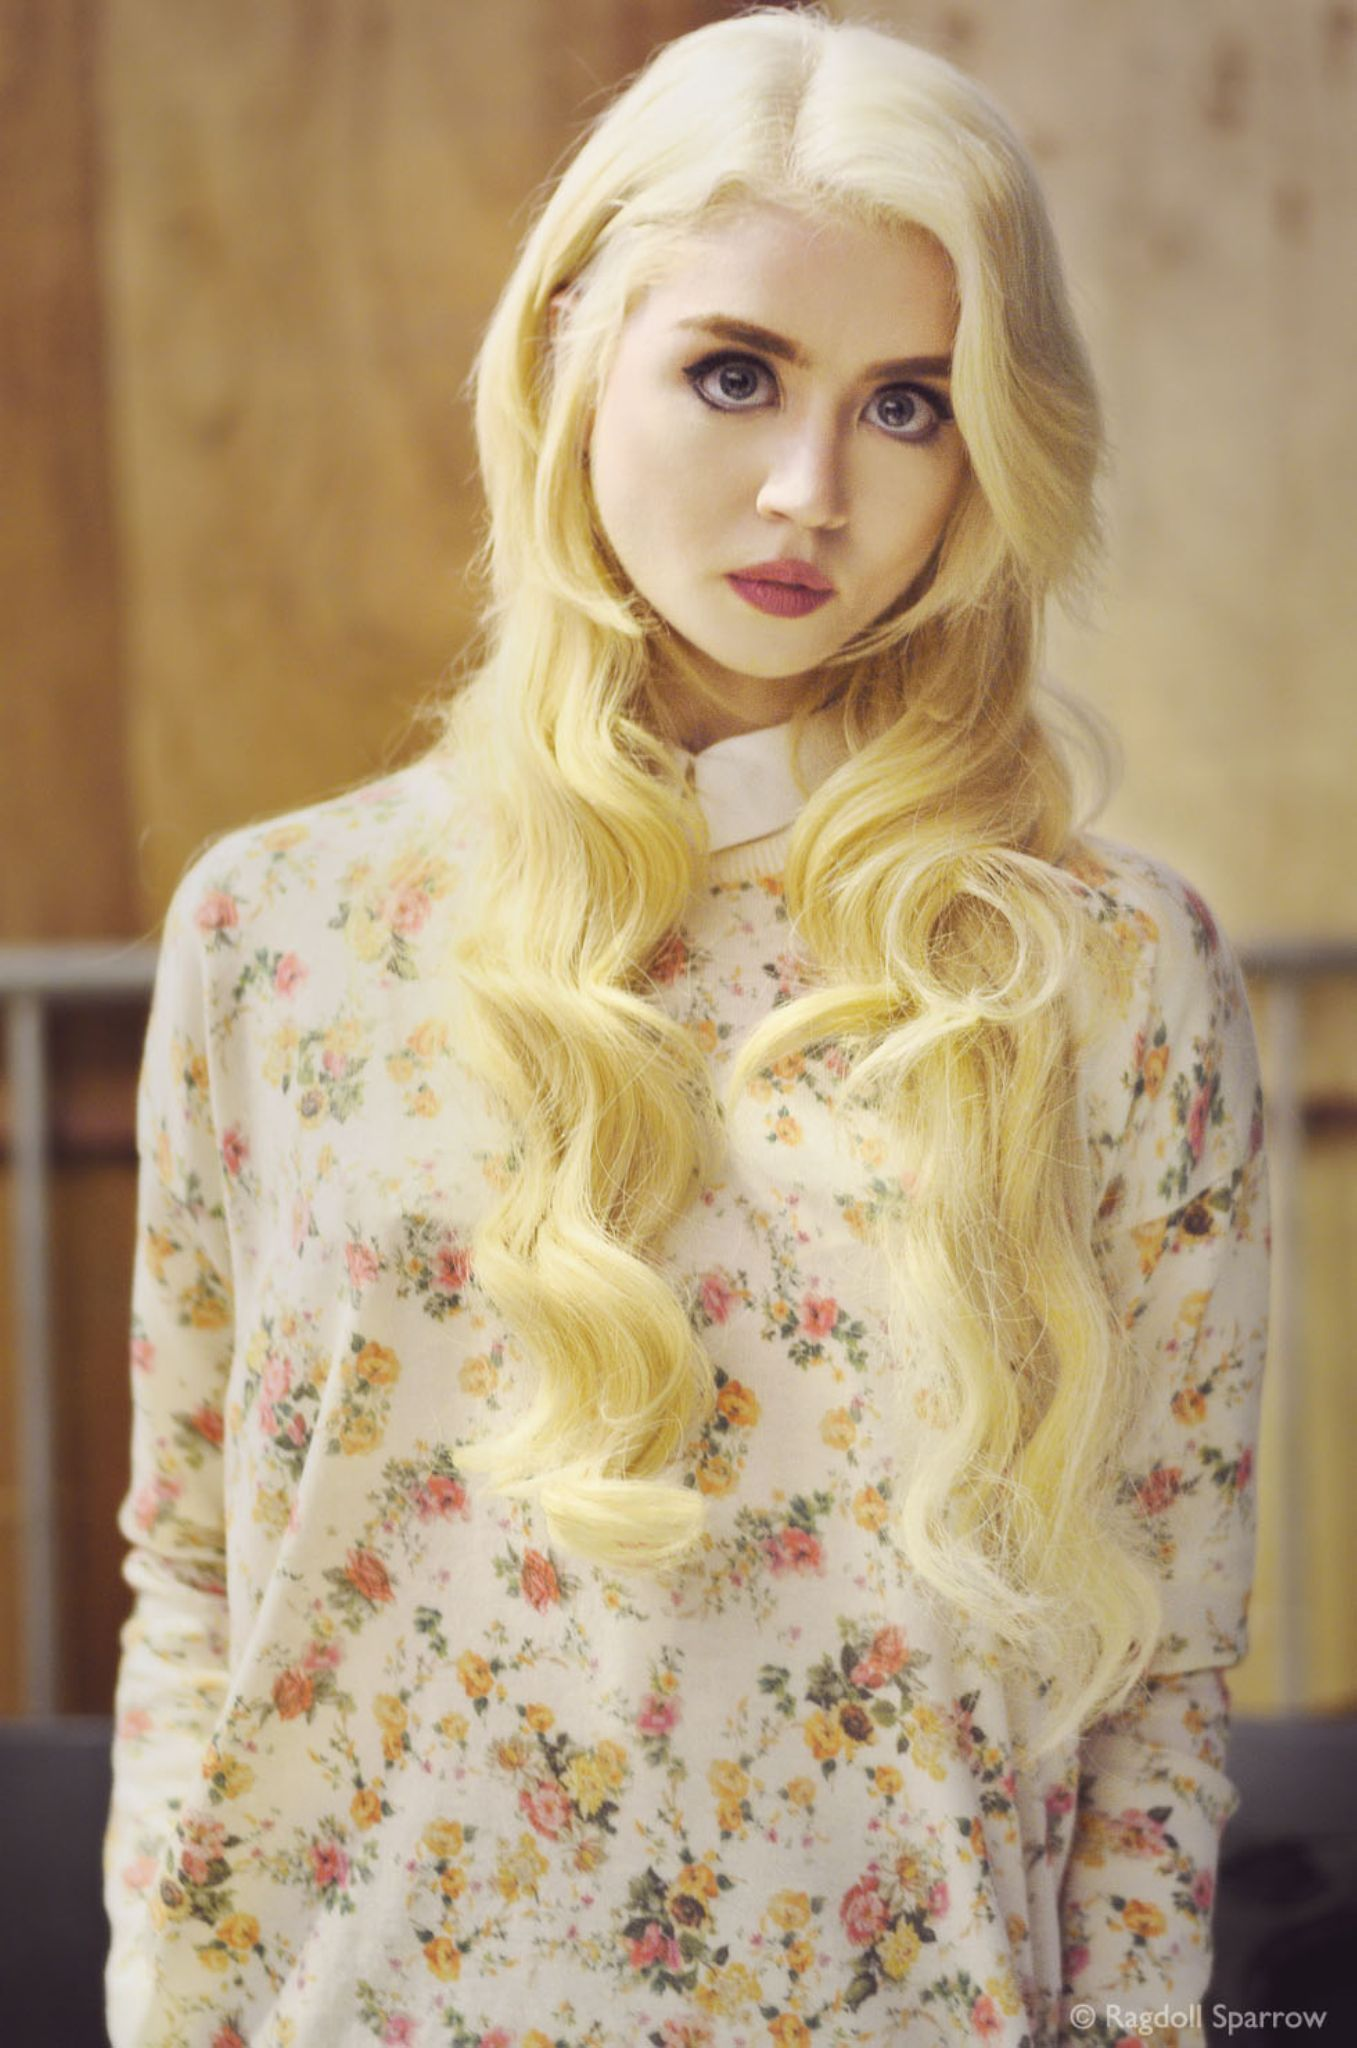 Allison Antm youpic - portrait: allison harvard | allison harvard